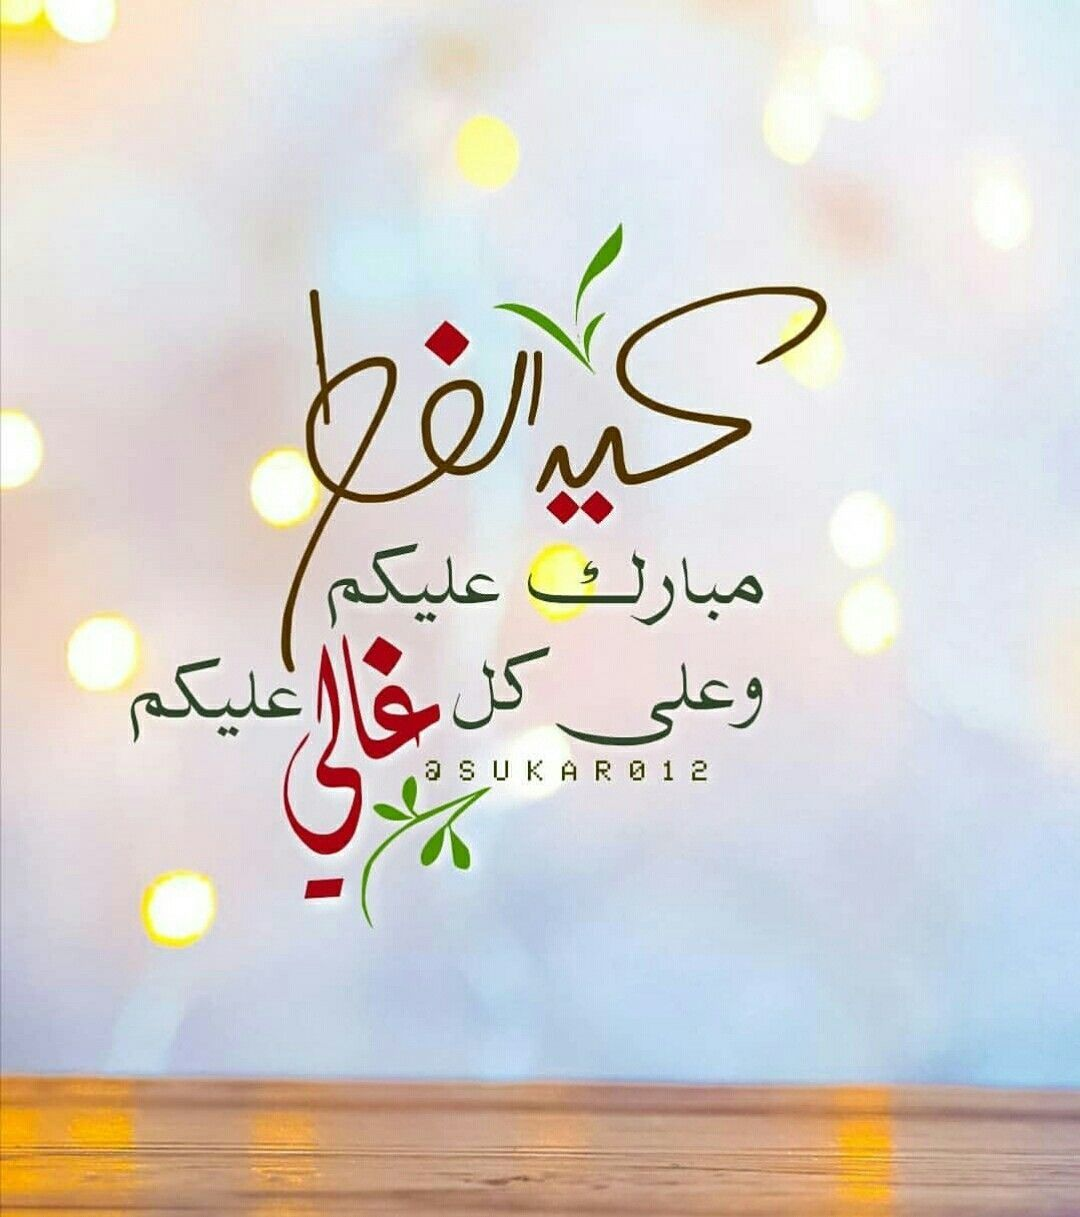 تهاني عيد الفطر 2019 Eid Greetings Happy Eid Eid Ul Adha